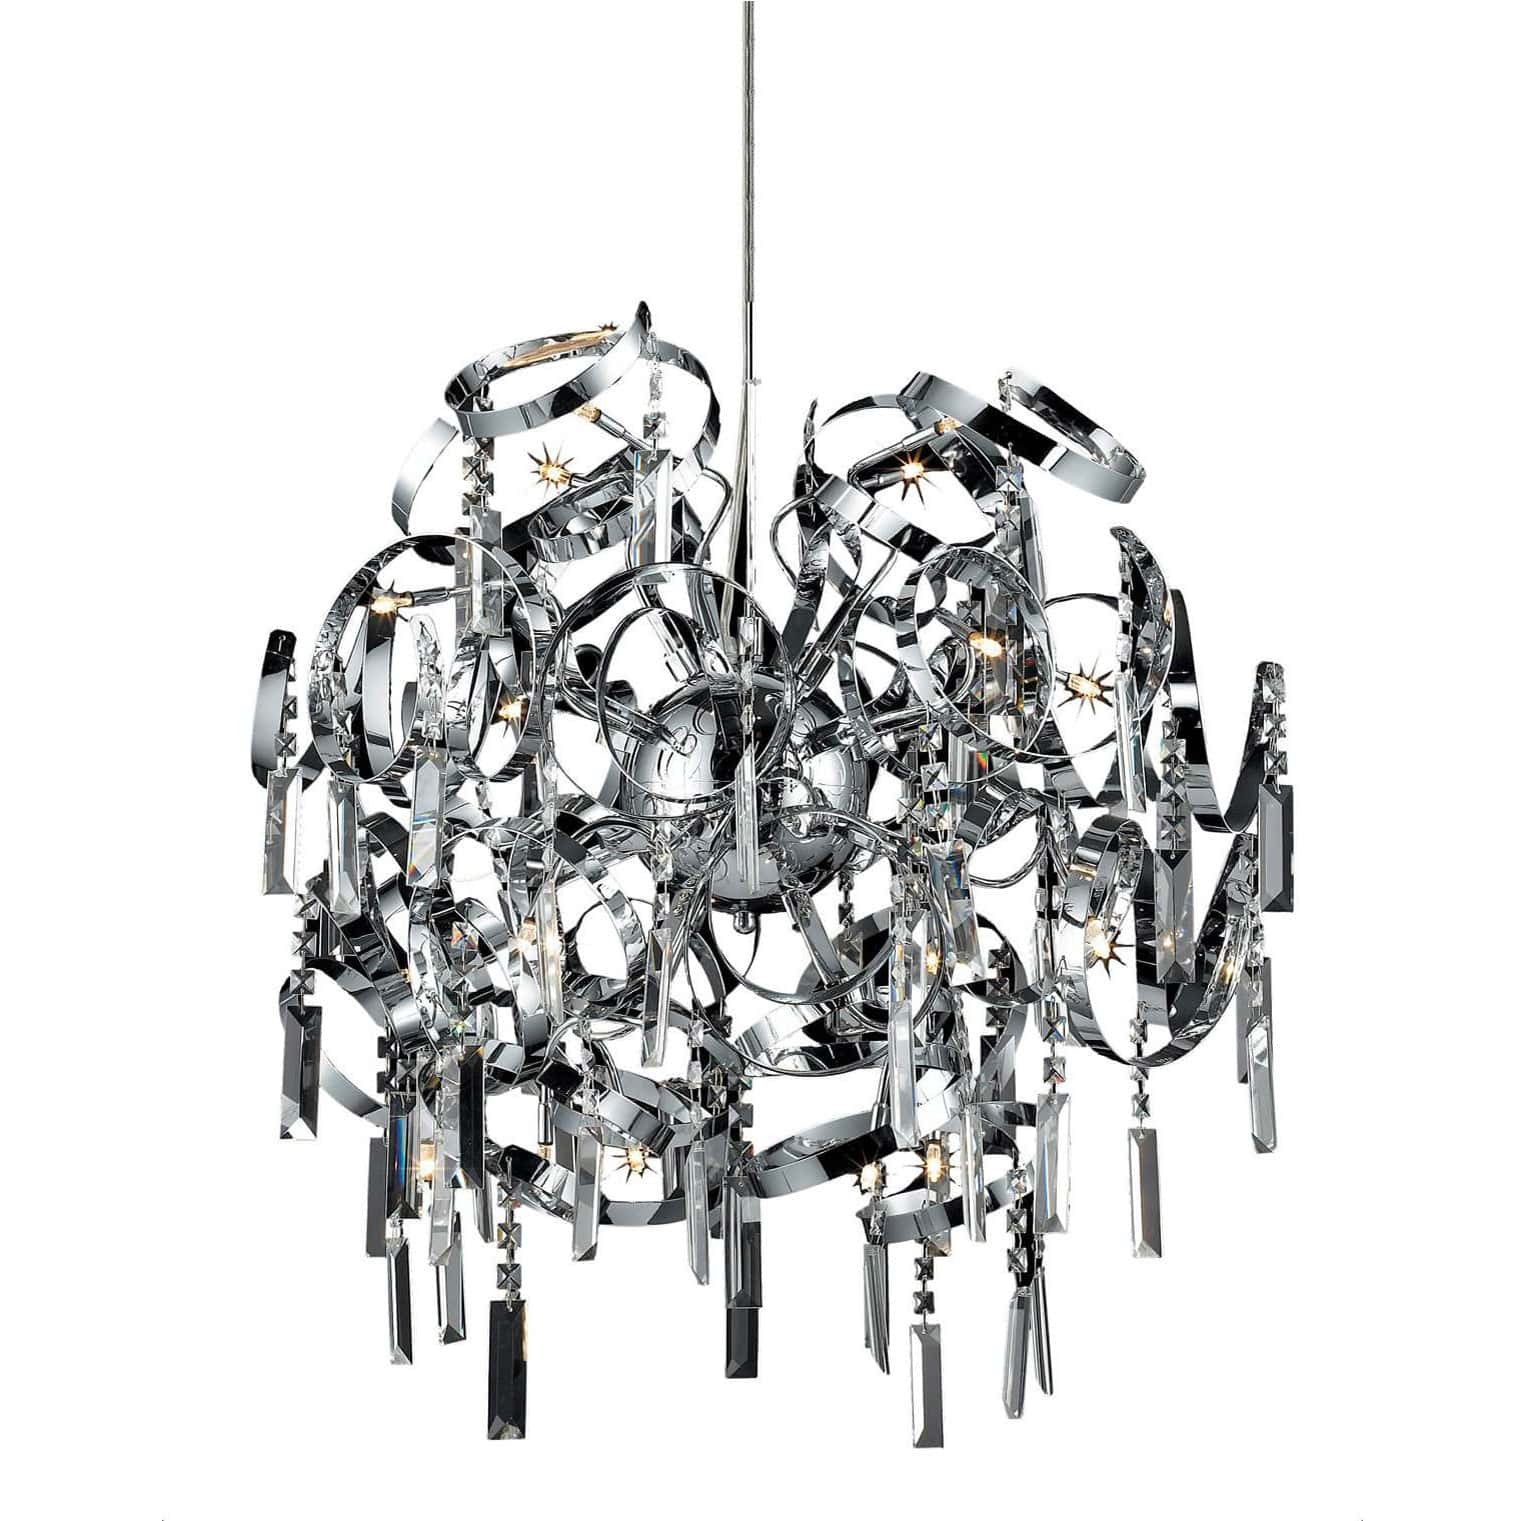 Azzardo crimps chrome silver metal crystal chandelier chandelier shack azzardo crimps chrome silver metal crystal chandelier mp 88046 16a mozeypictures Images